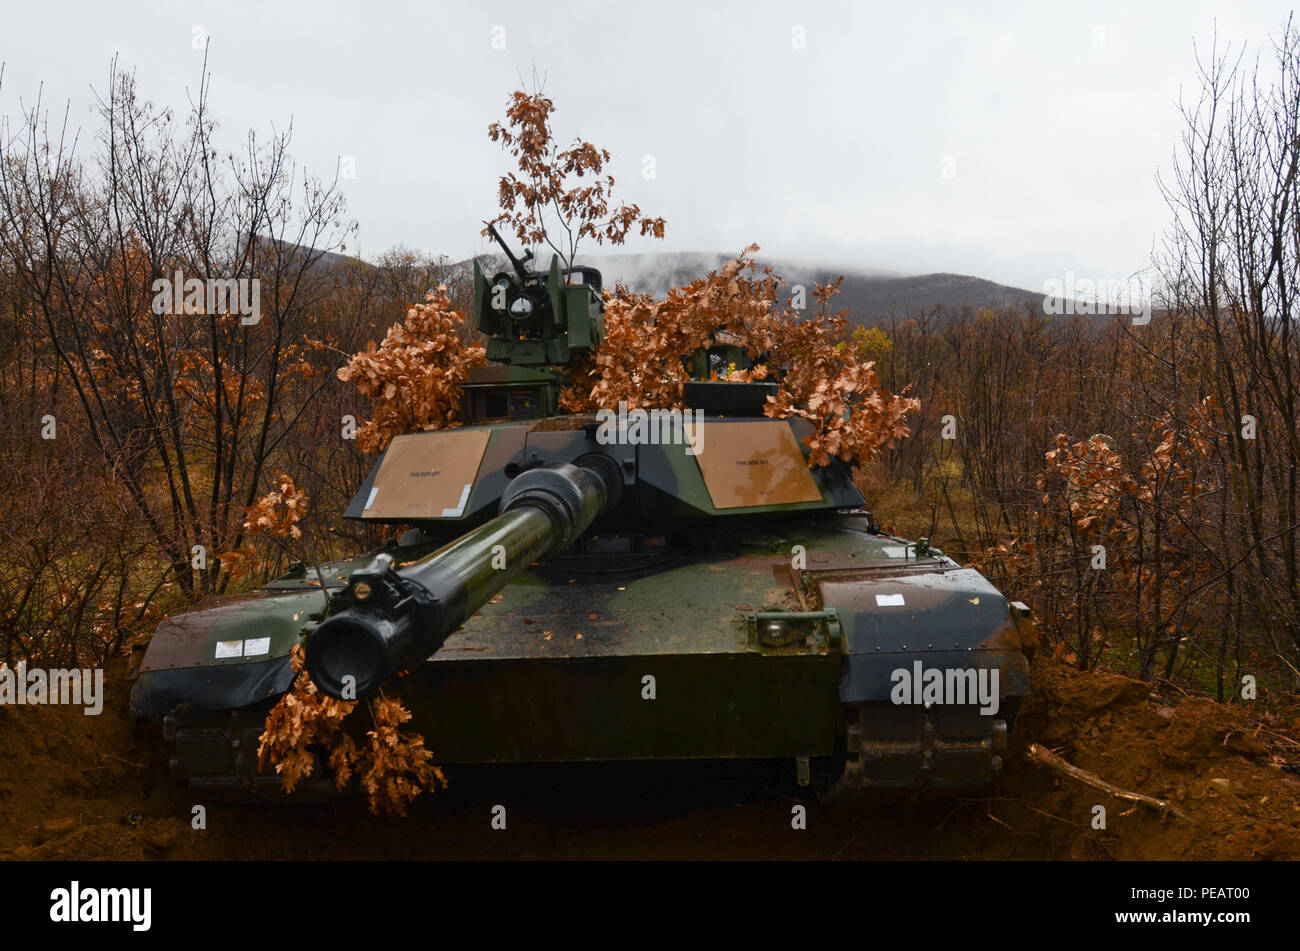 Soldiers of 5th Squadron, 7th Cavalry Regiment, 3rd Infantry Division, stationed at Fort Stewart, Ga., drive a camouflaged an M1A2 System Enhancement Package Version 2 Abrams tank during Exercise Peace Sentinel at Novo Selo Training Center, Bulgaria, Nov. 23, 2015. (Photo by Staff Sgt. Steven M. Colvin/Released) - Stock Image